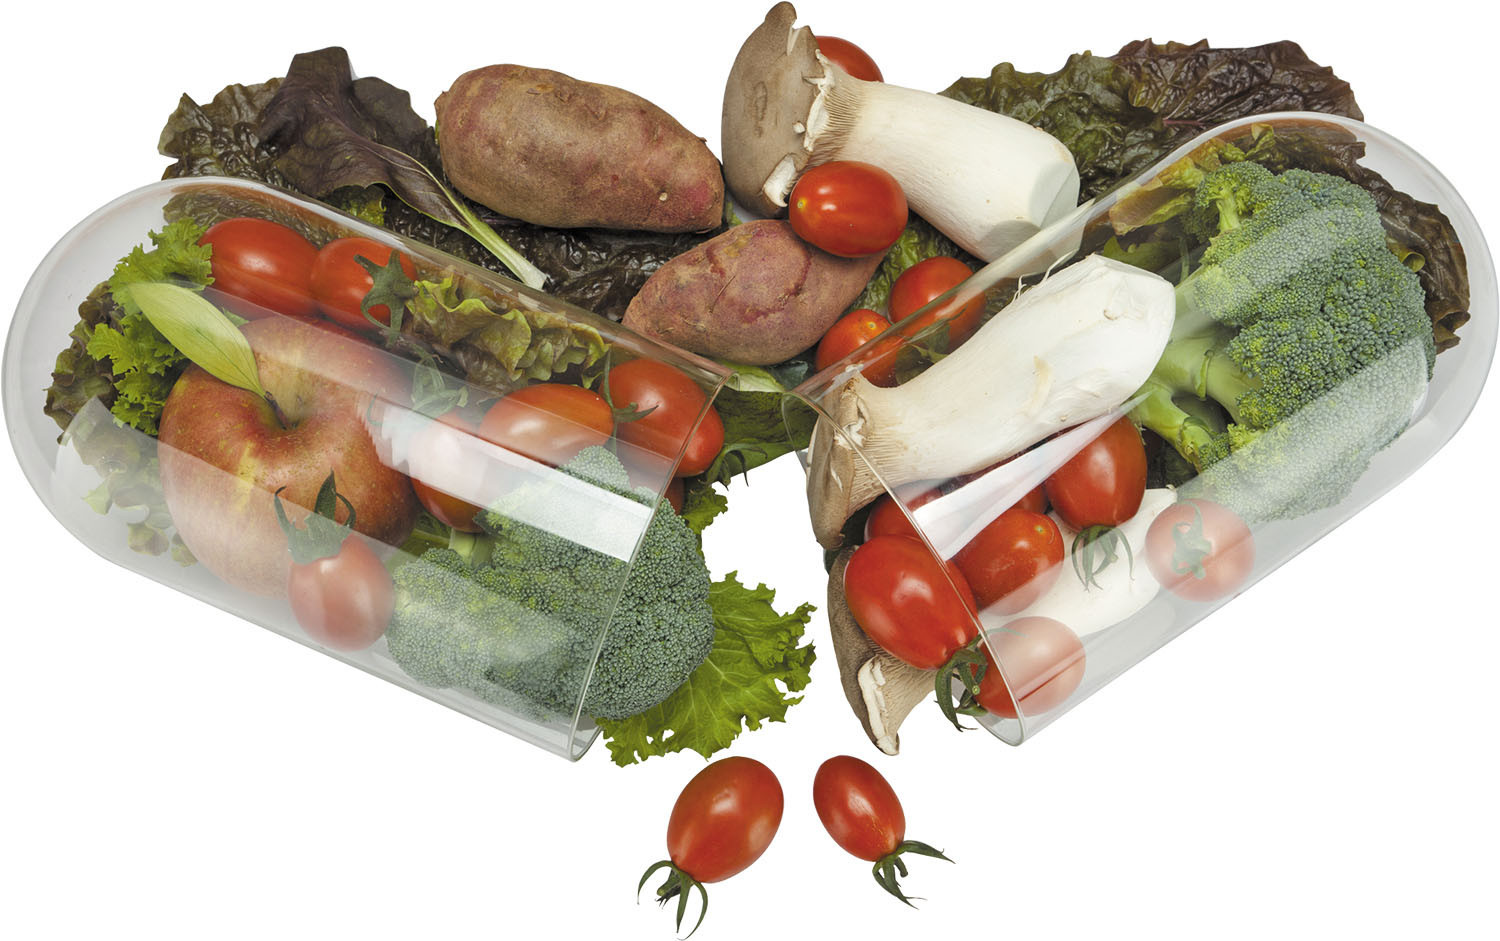 Want to know about the top 10 nutrition myths